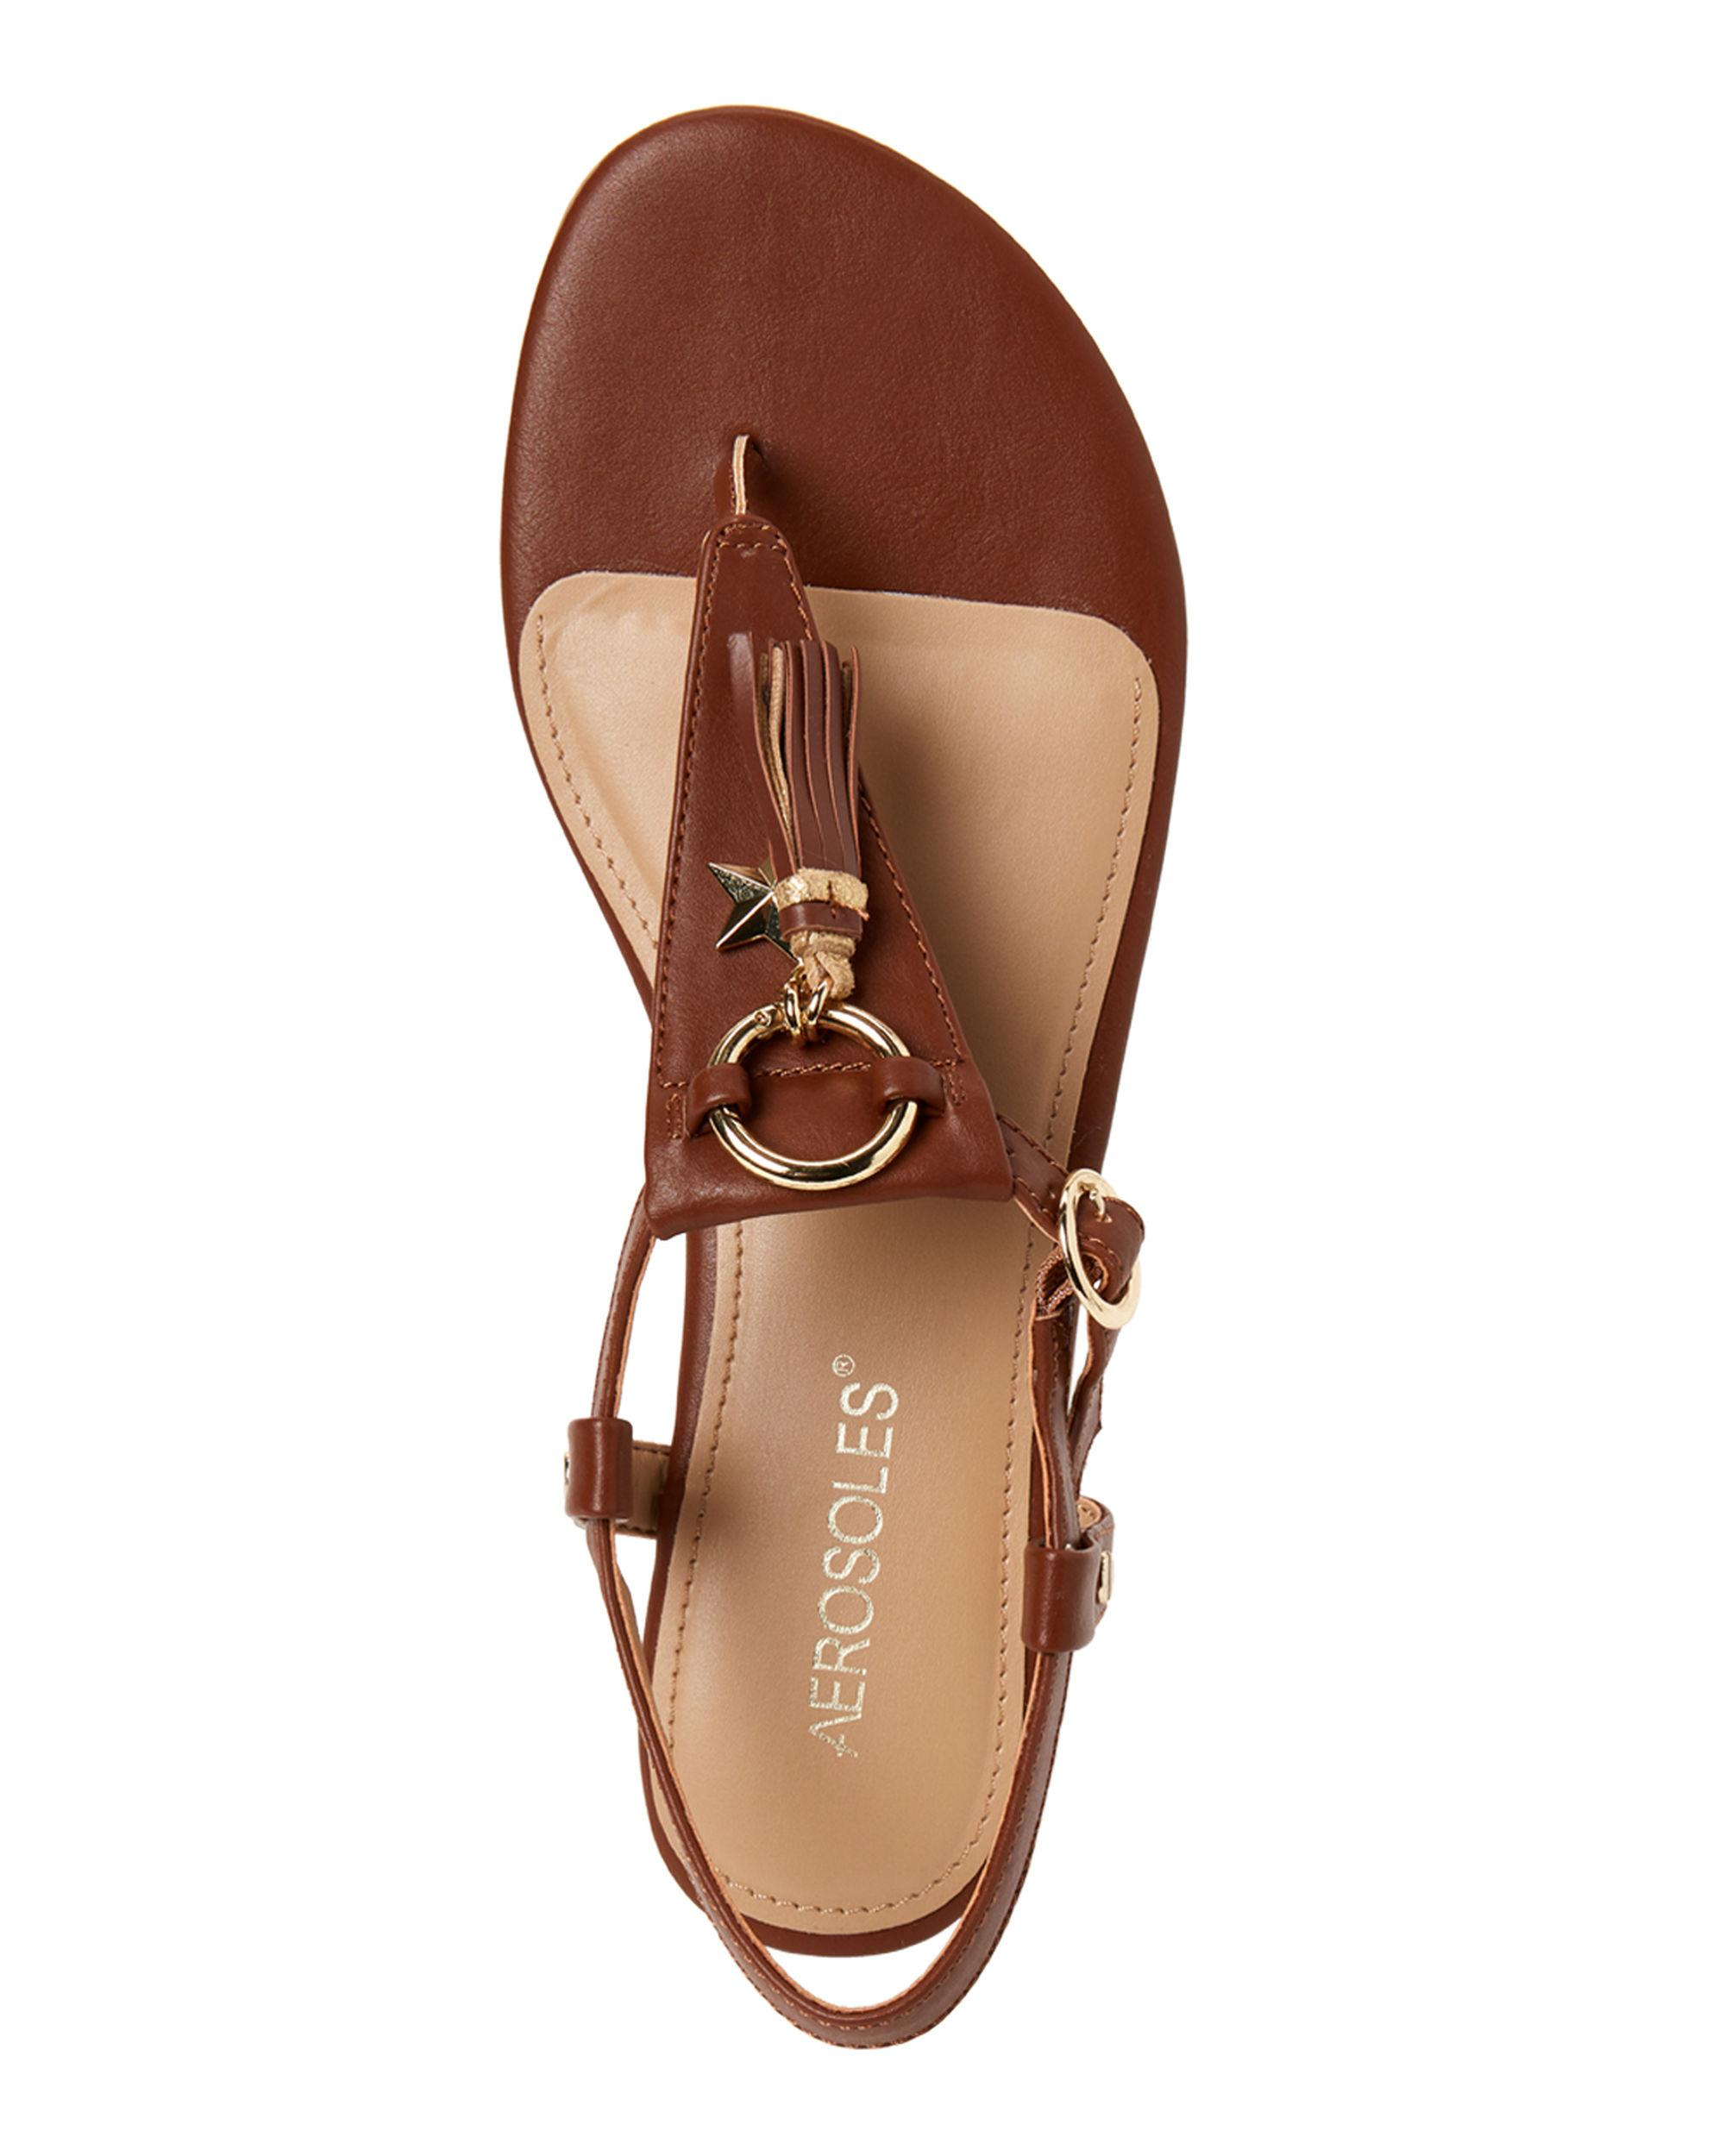 444e9d39e065 Aerosoles - Brown Dark Tan Short Circuit Thong Sandals - Lyst. View  fullscreen